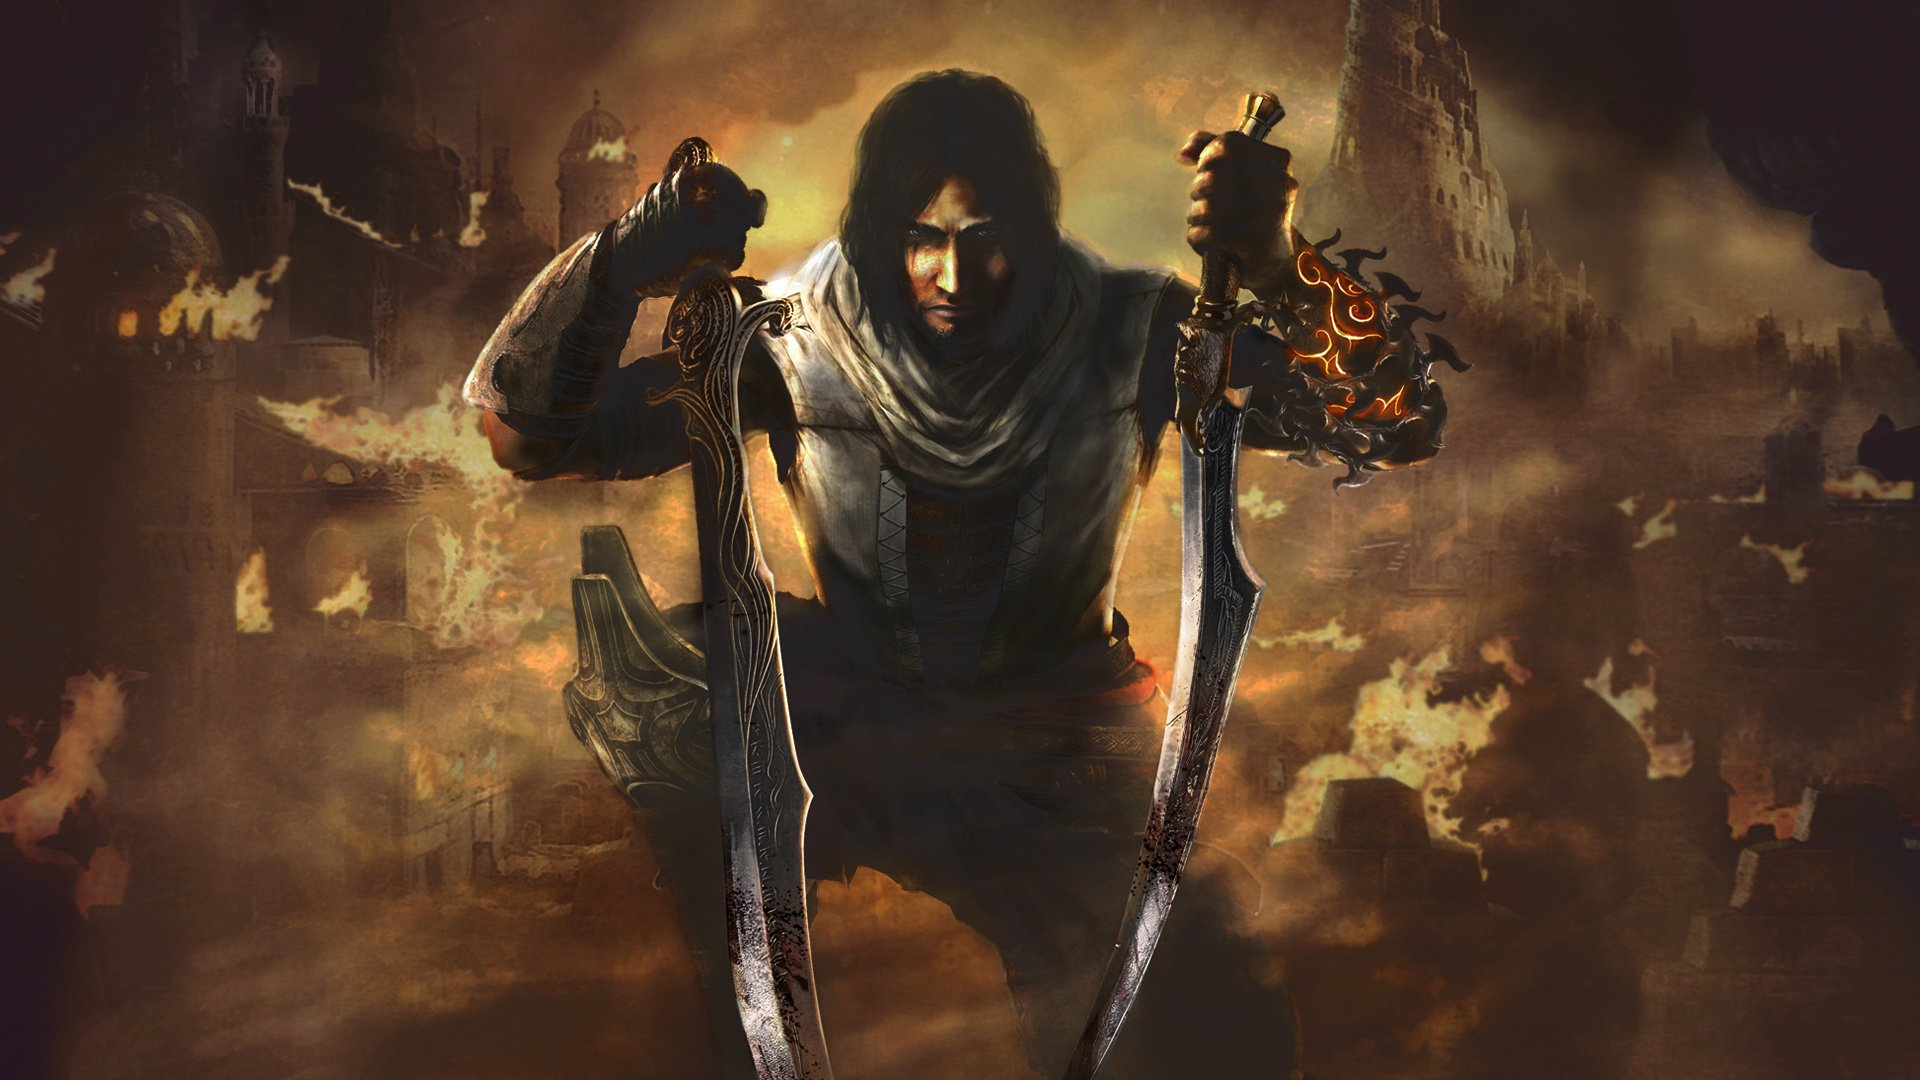 45 prince of persia hd wallpapers | background images - wallpaper abyss